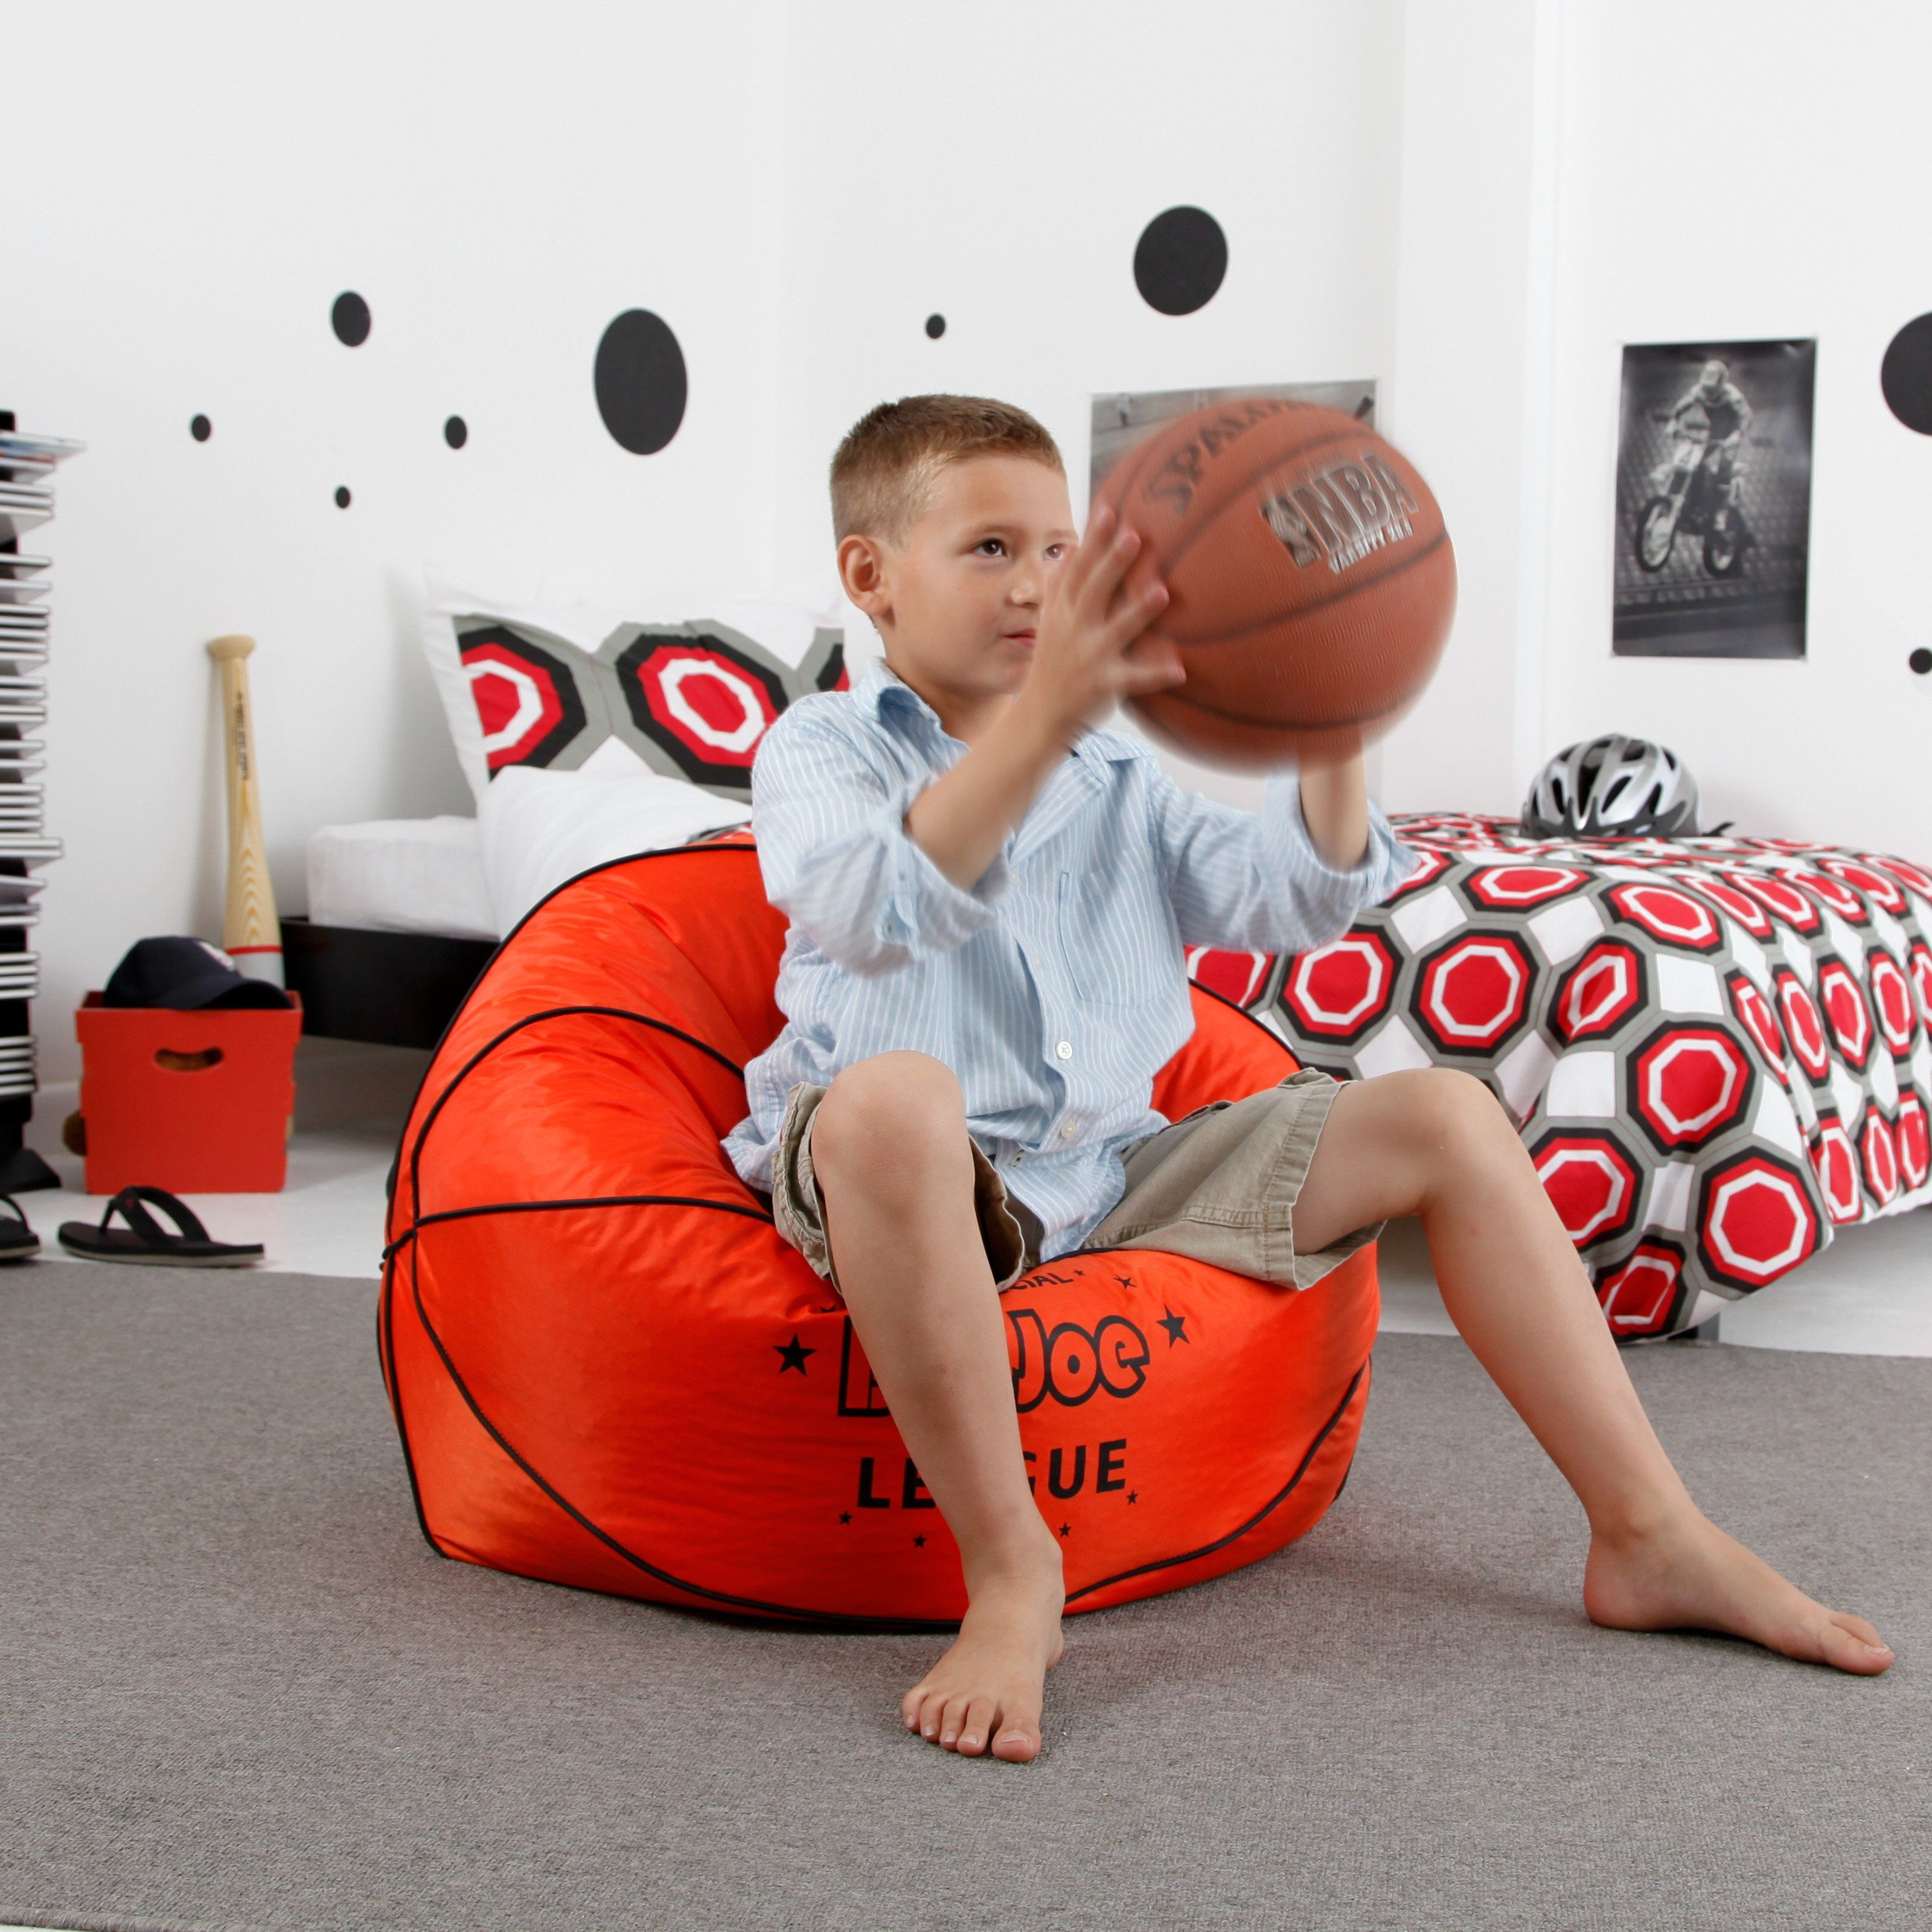 Have To It For Little Kids Reading Together Small Soccer Sports Ball Bean Bag Chair 29 98 With Free Economy Shipping